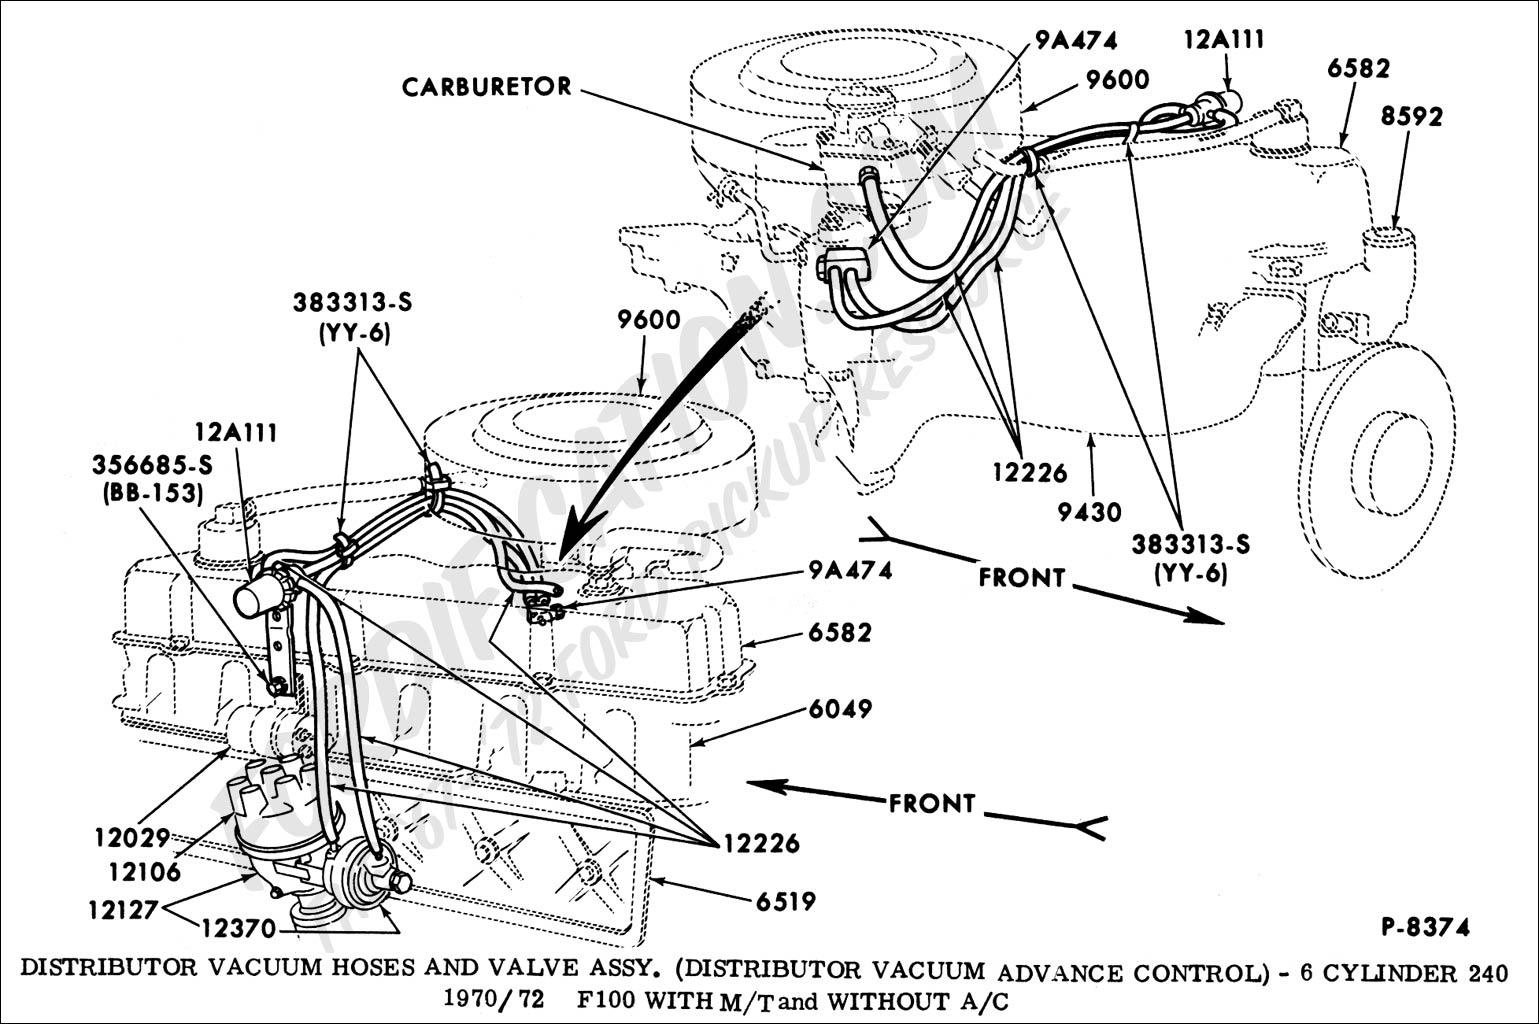 1970 Chevelle Dash Diagram Wiring Diagrams in addition 1967 Mustang Wiring And Vacuum Diagrams moreover 196719683 also Schematics i together with 332842 Clutch Rod Bent. on 1966 ford fairlane wiring diagram